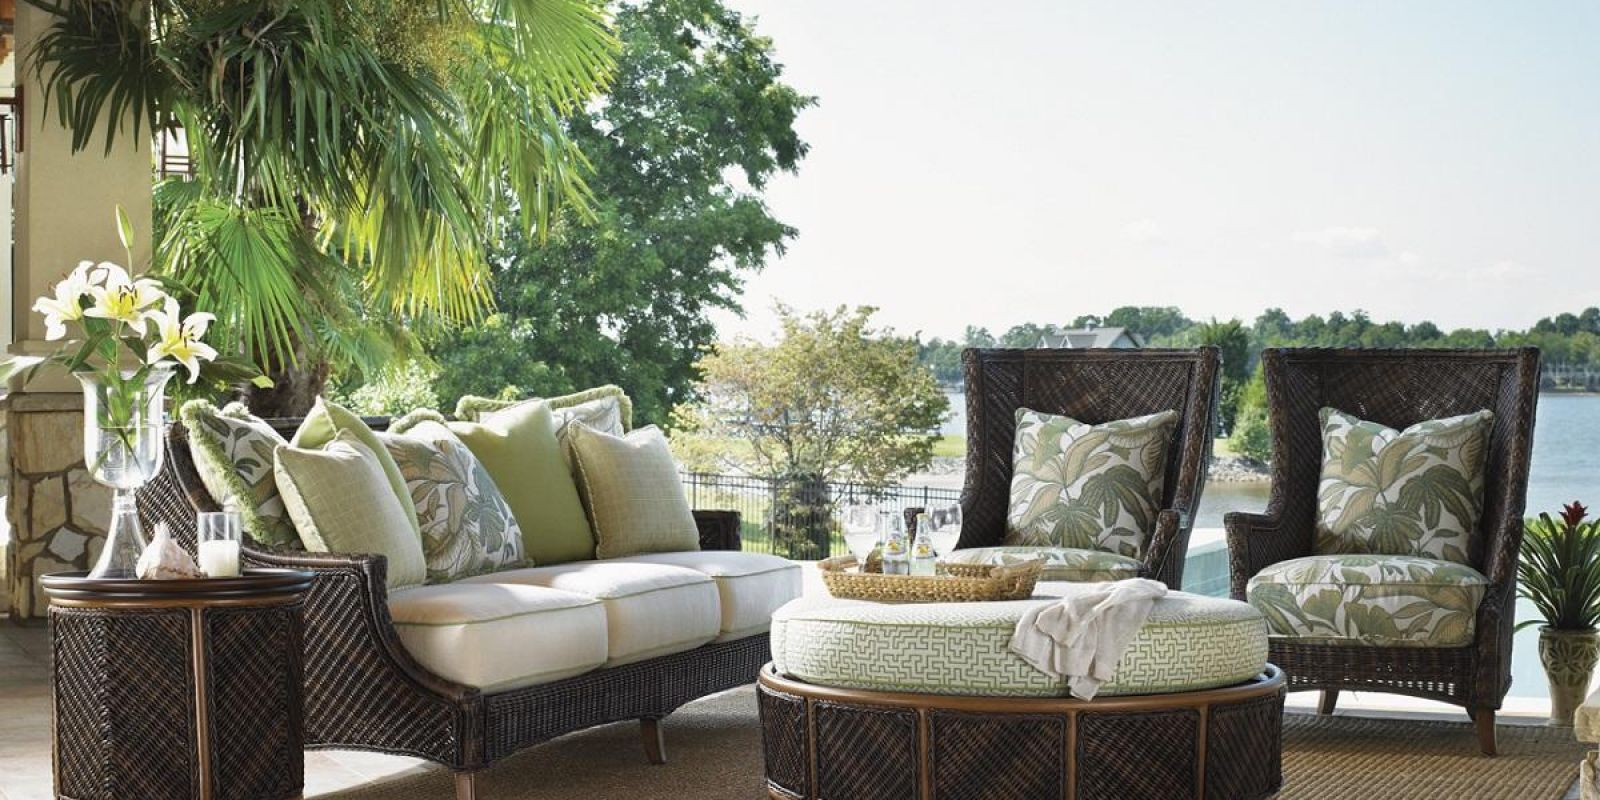 Outdoor Furniture | American Casual Living on Porch & Patio Casual Living id=47992